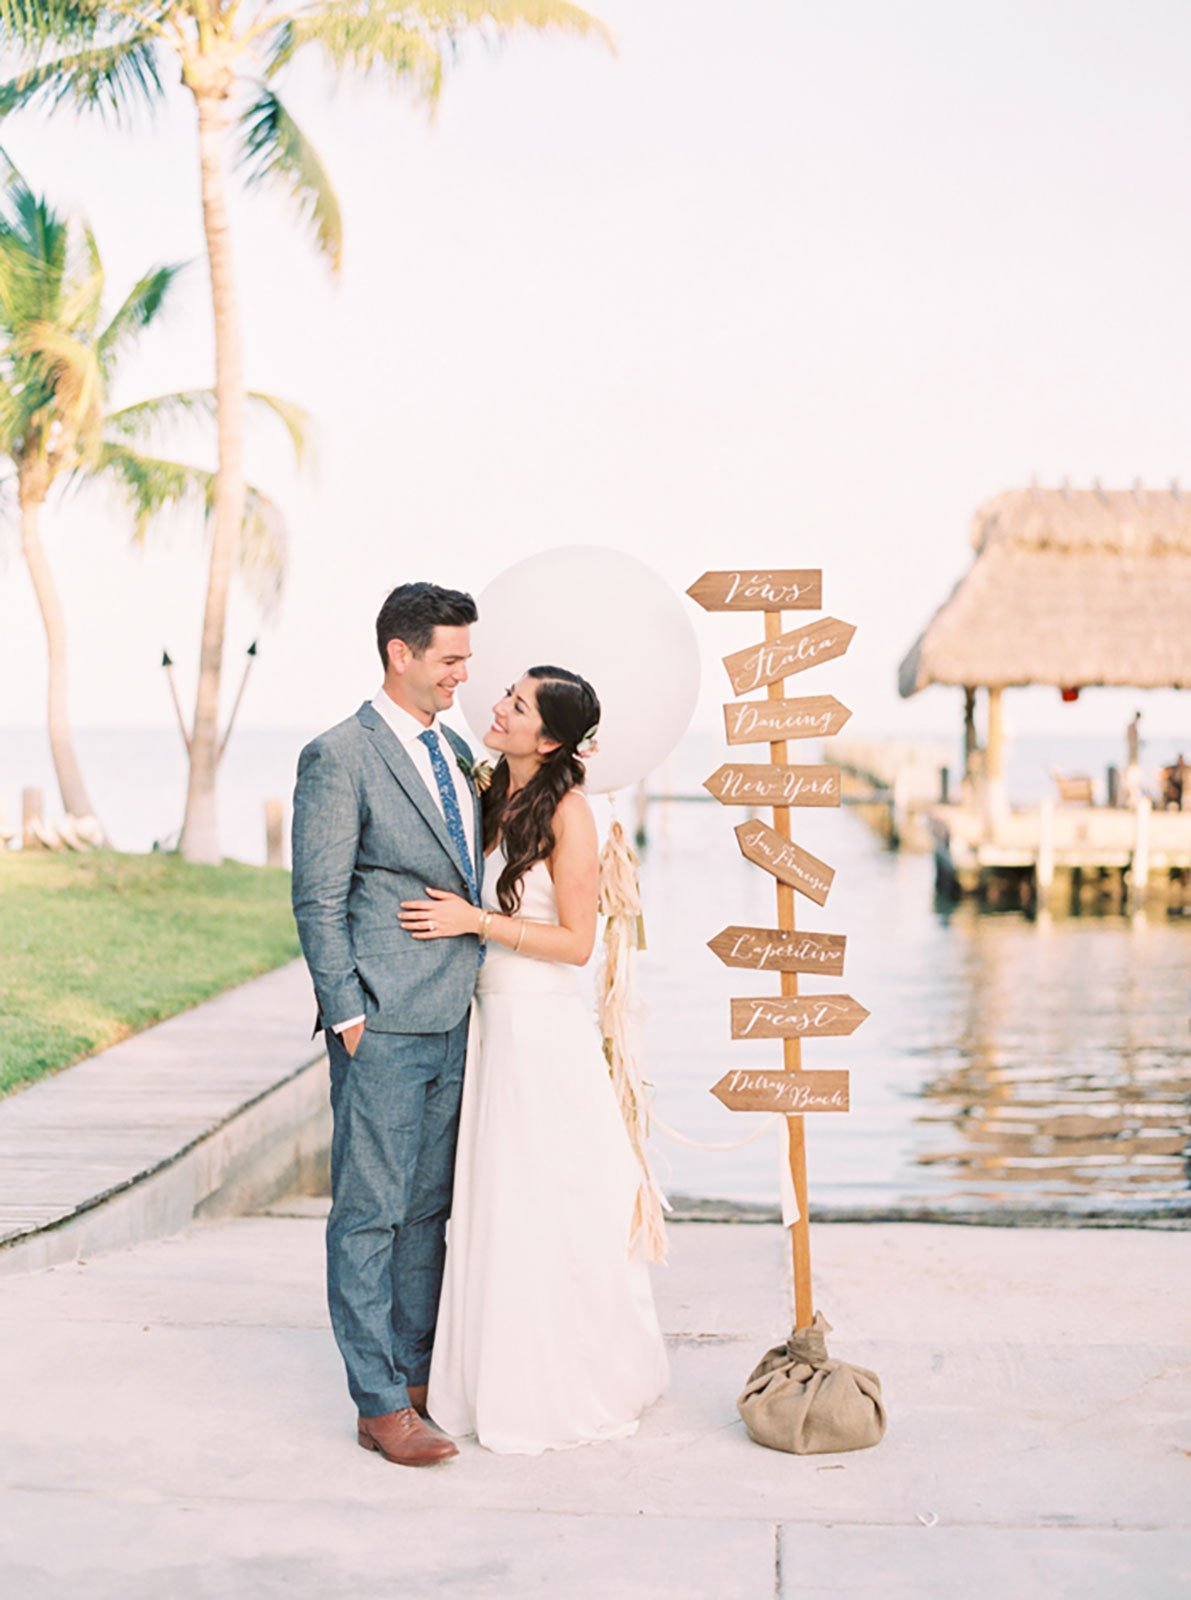 Reception directional sign for wedding at The Caribbean Resort in Islamorada